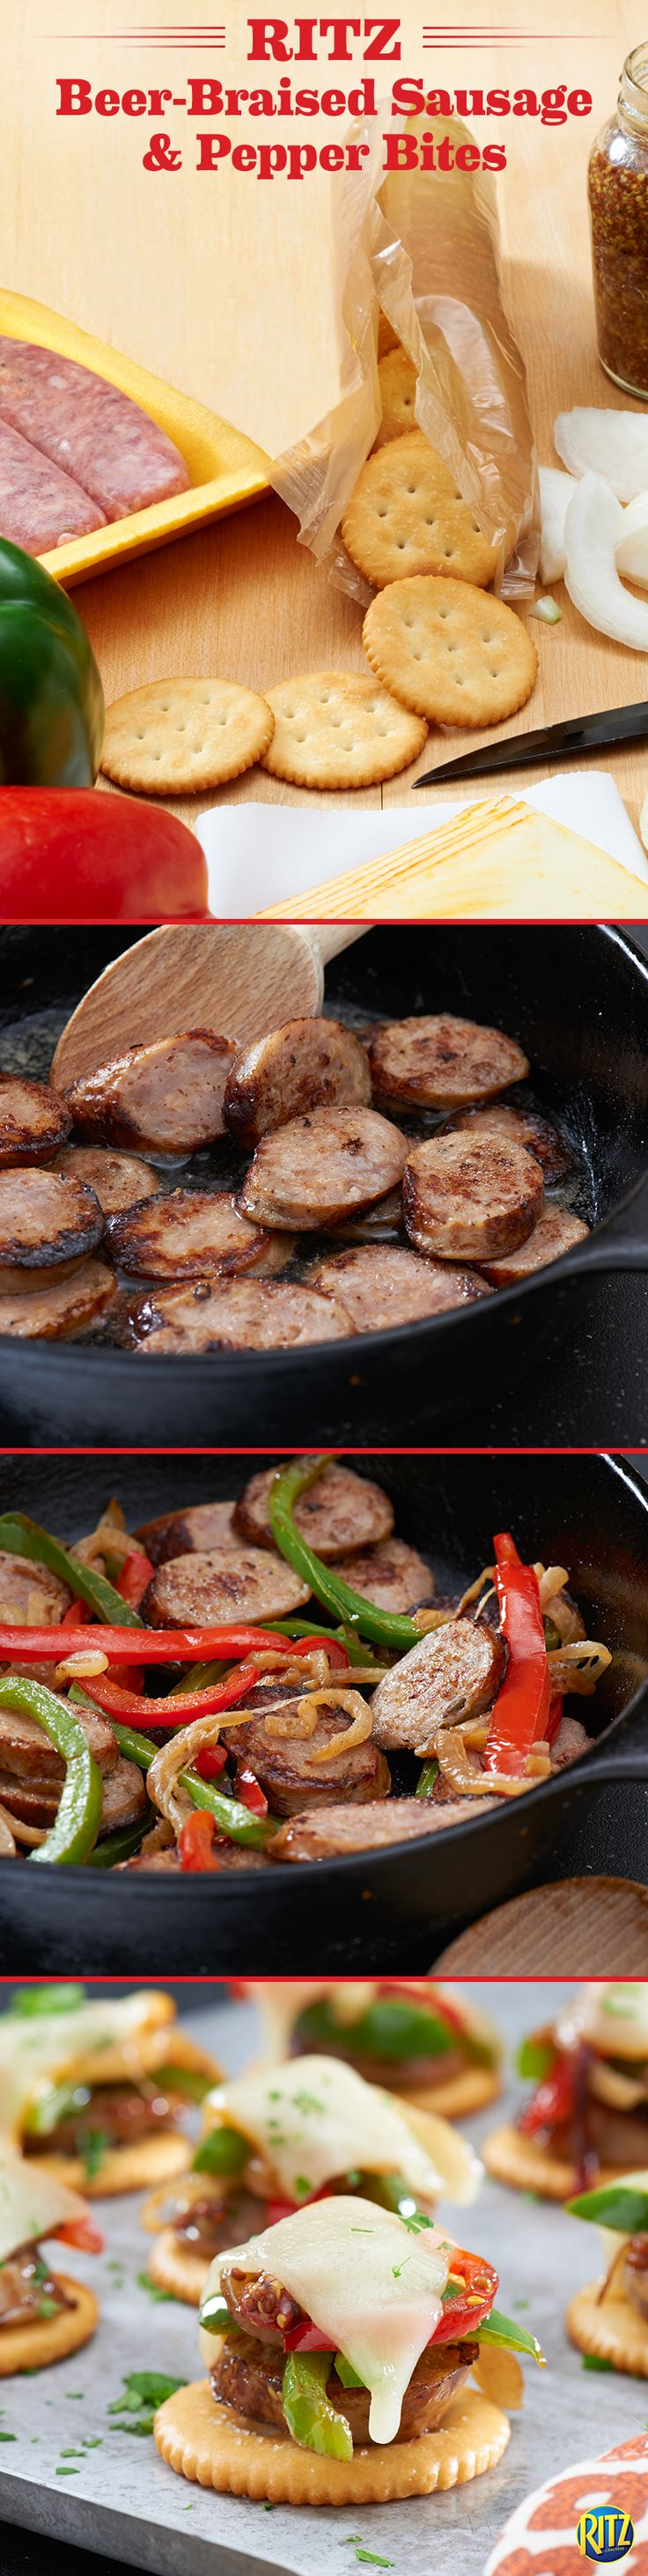 Our RITZ cracker Beer-Braised Sausage & Pepper Bites make a tasty appetizer for the holidays! Cook Italian sausage and light beer in a skillet until evenly browned. While this cools, cook sweet onions, red and green peppers, and beer in a skillet until tender, stirring in dijon mustard. Top RITZ crackers with a sausage slice, onion mixture, and Muenster cheese. Bake until cheese melts and sprinkle with parsley.